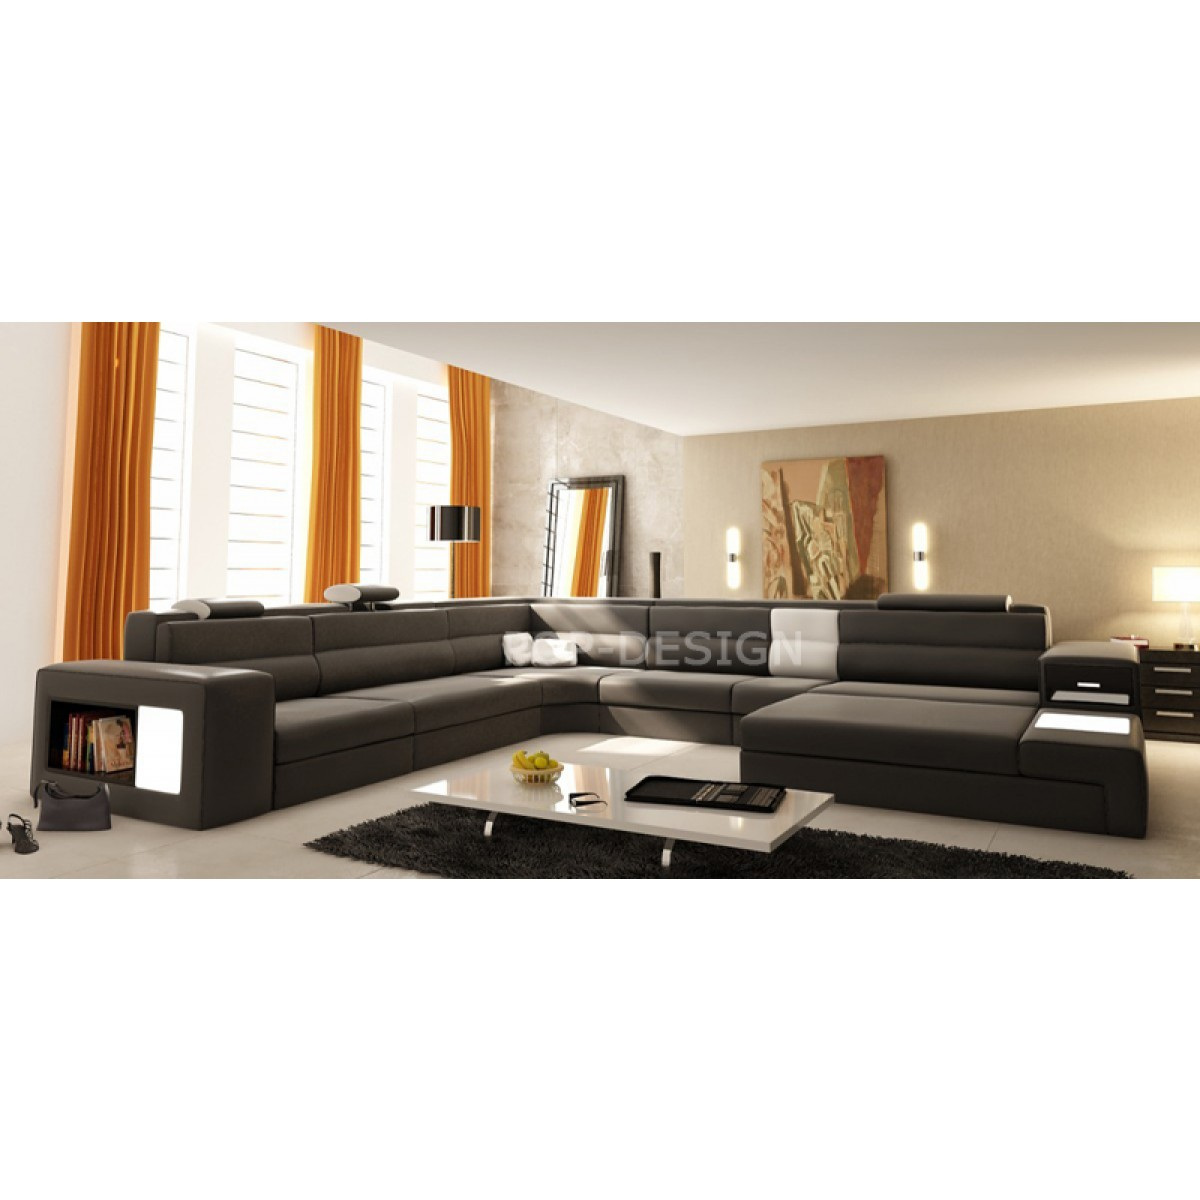 canap d 39 angle xxl design en cuir osimo rangements clairages. Black Bedroom Furniture Sets. Home Design Ideas